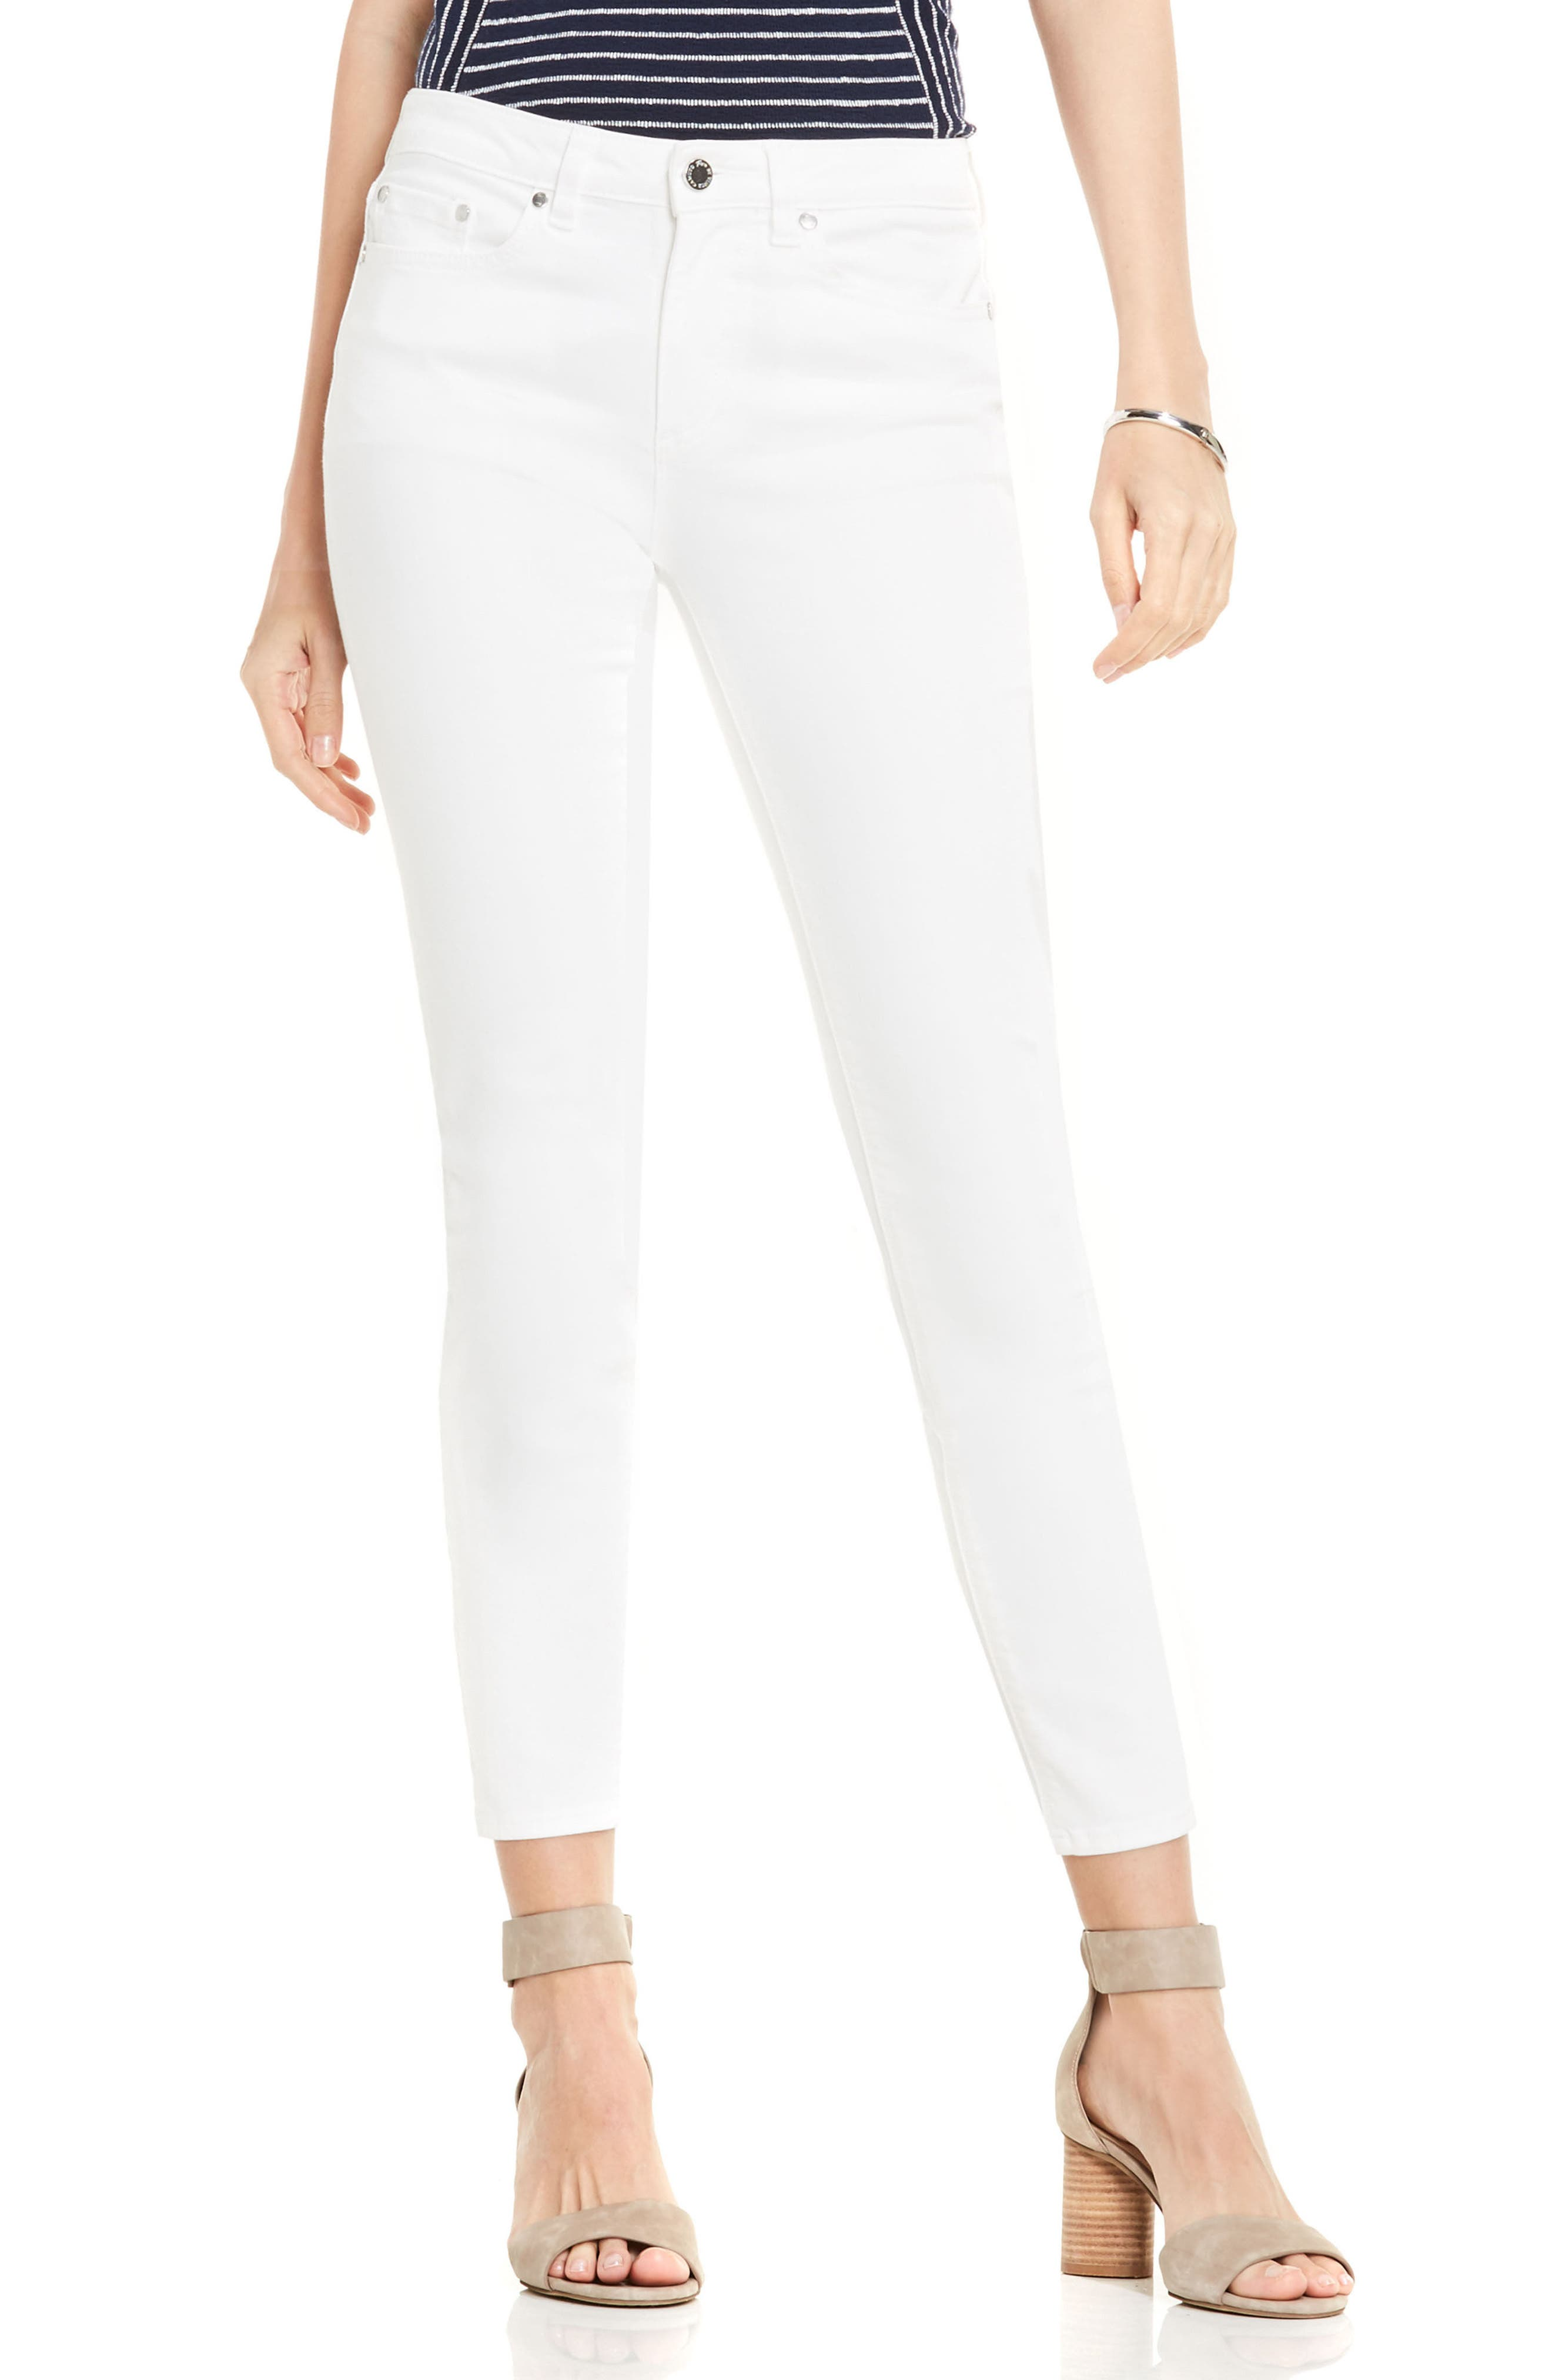 TWO BY VINCE CAMUTO Skinny Jeans in Ultra White